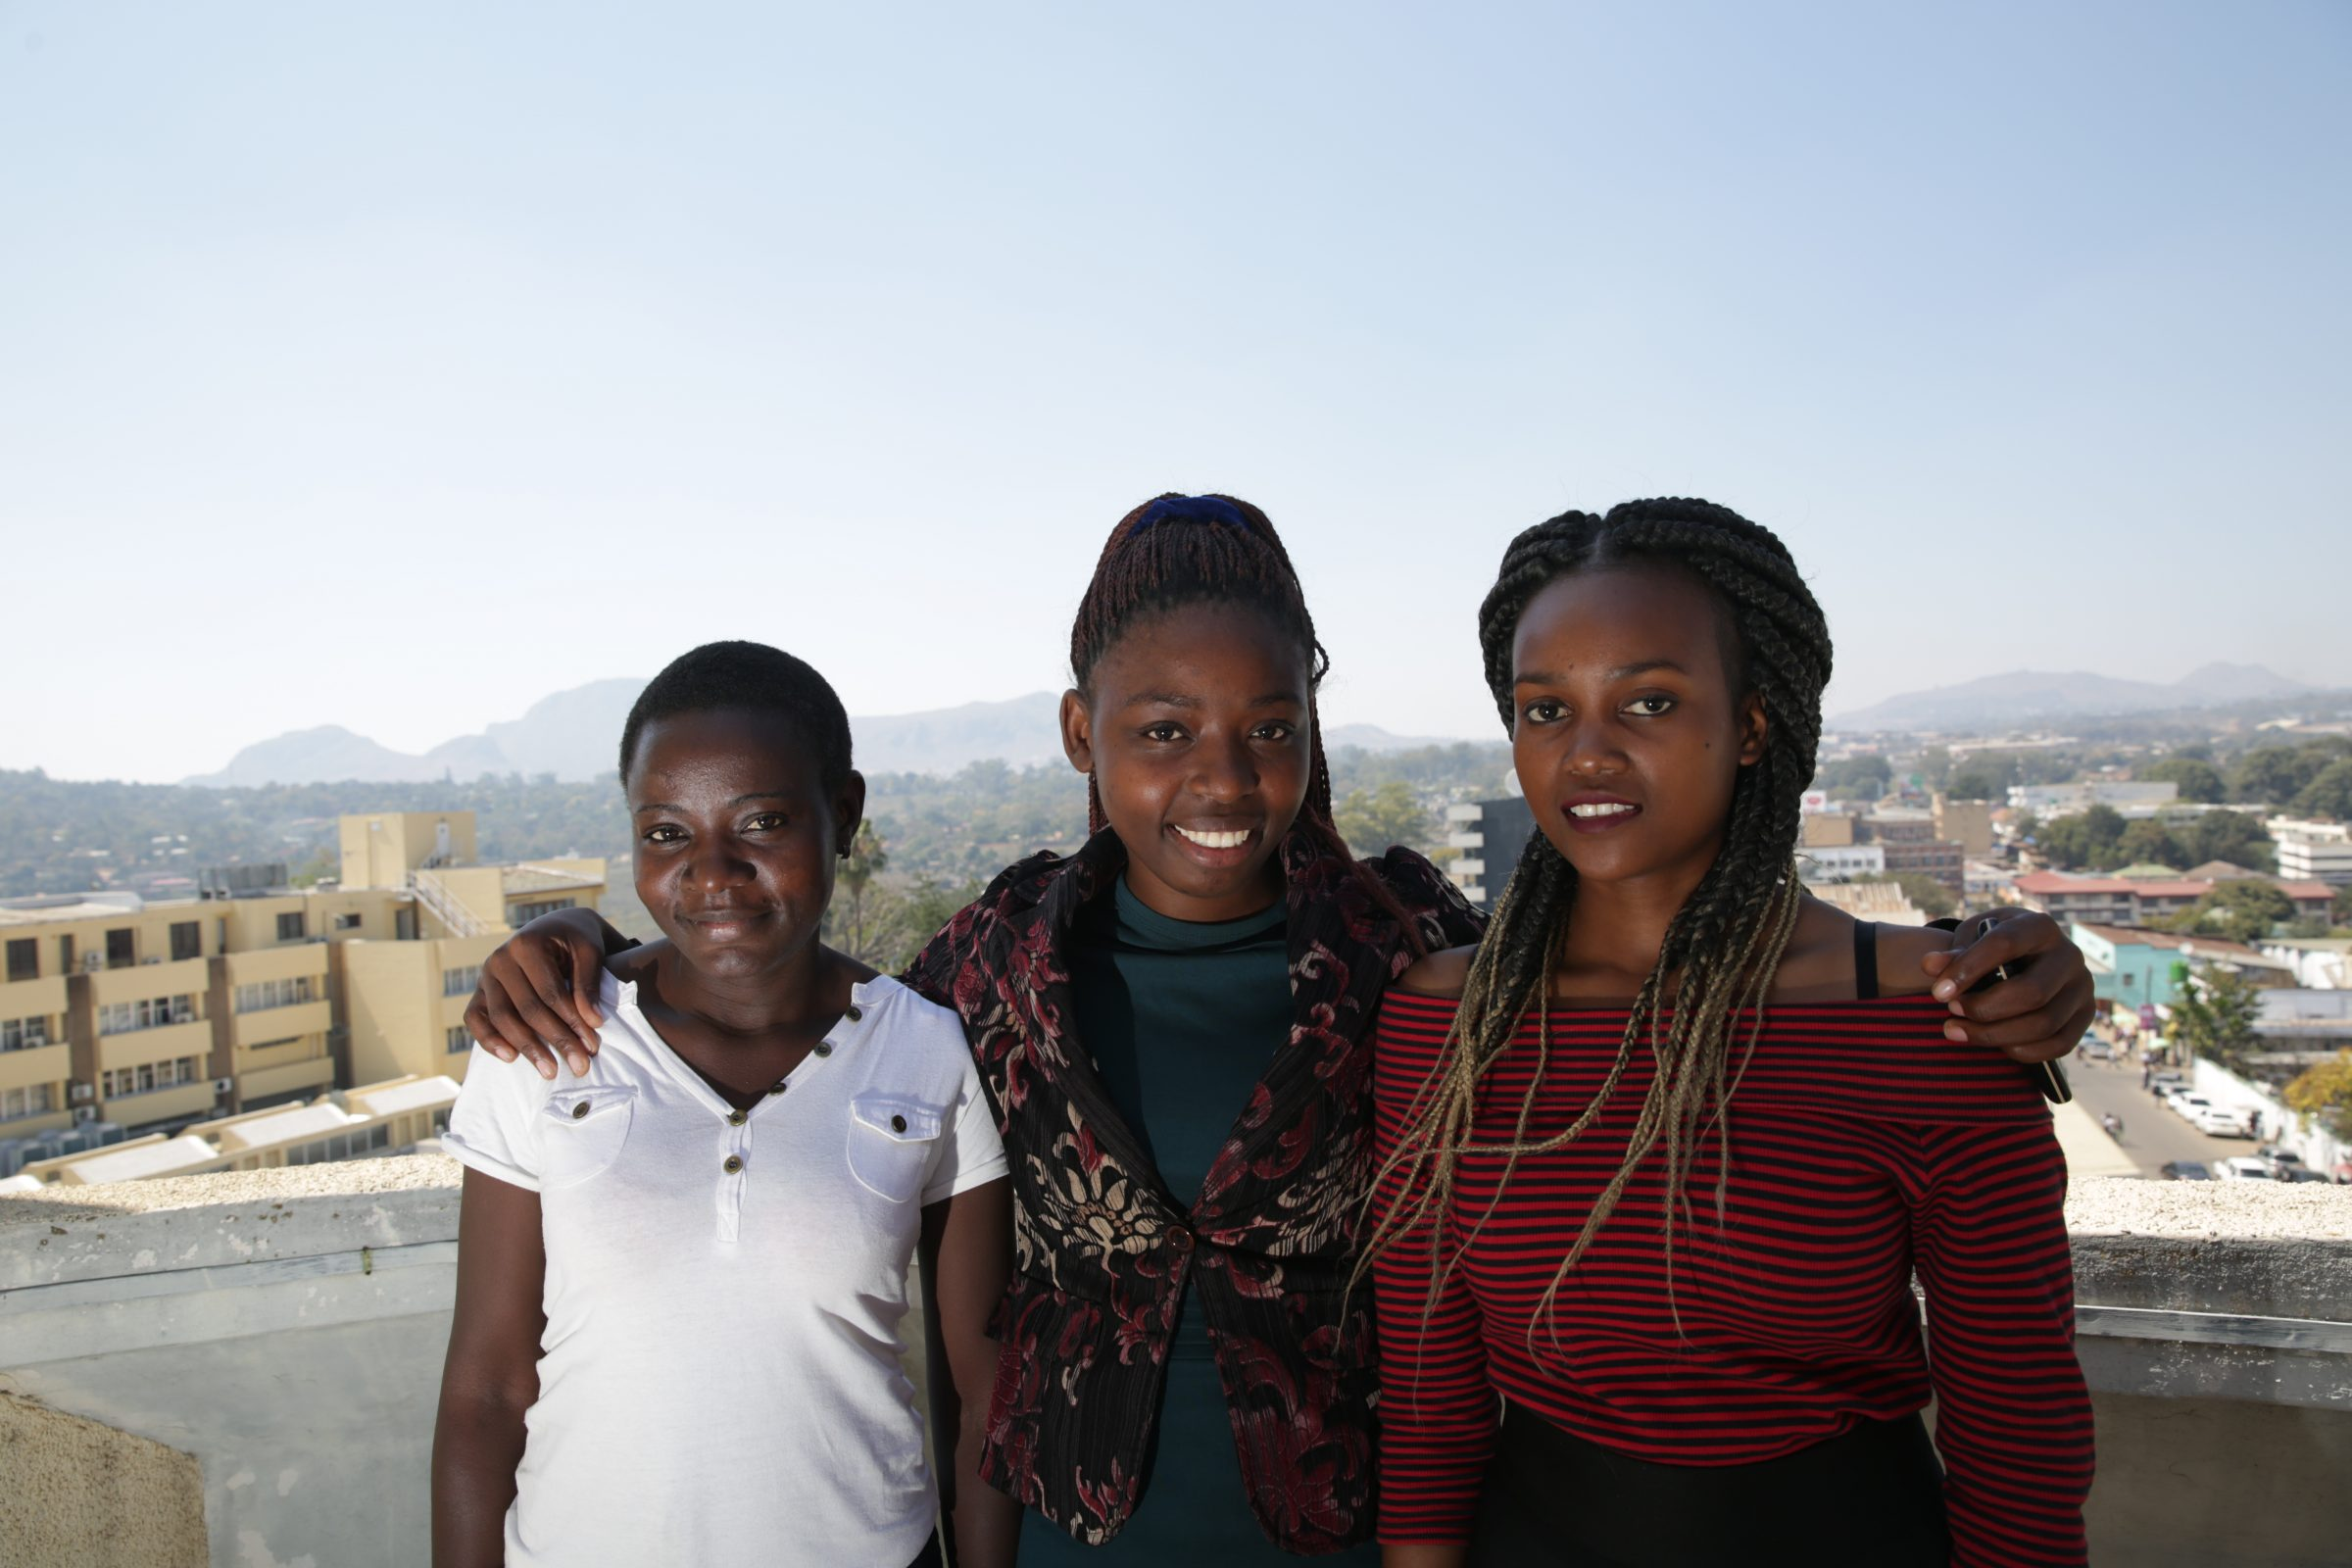 Photograph of three scholarship recipients posing together on the roof of ESCOM's Blantyre office